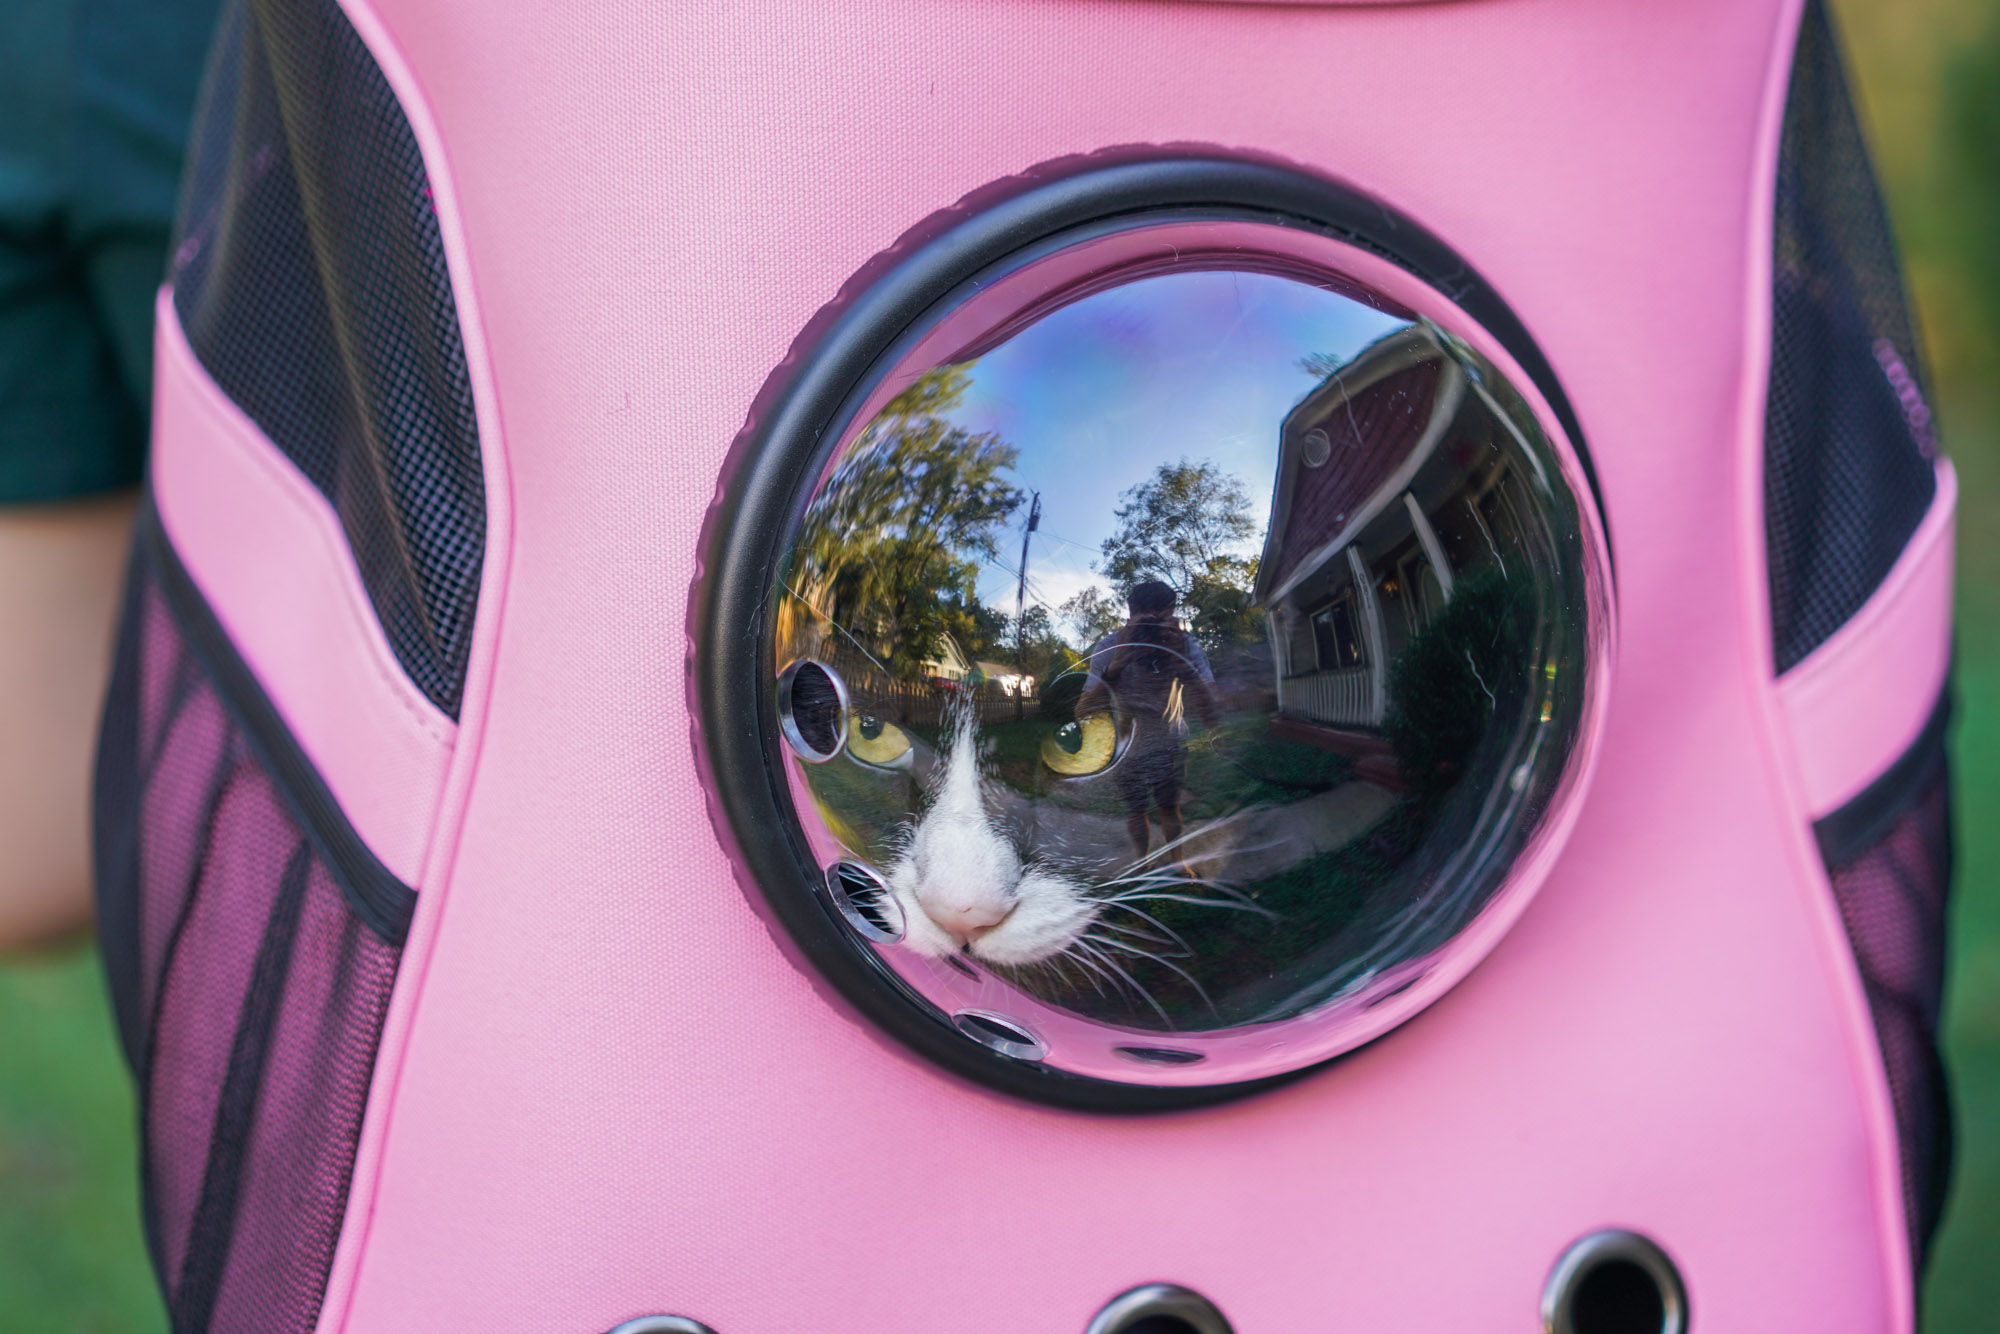 tuxedo cat in pink Fat Cat backpack